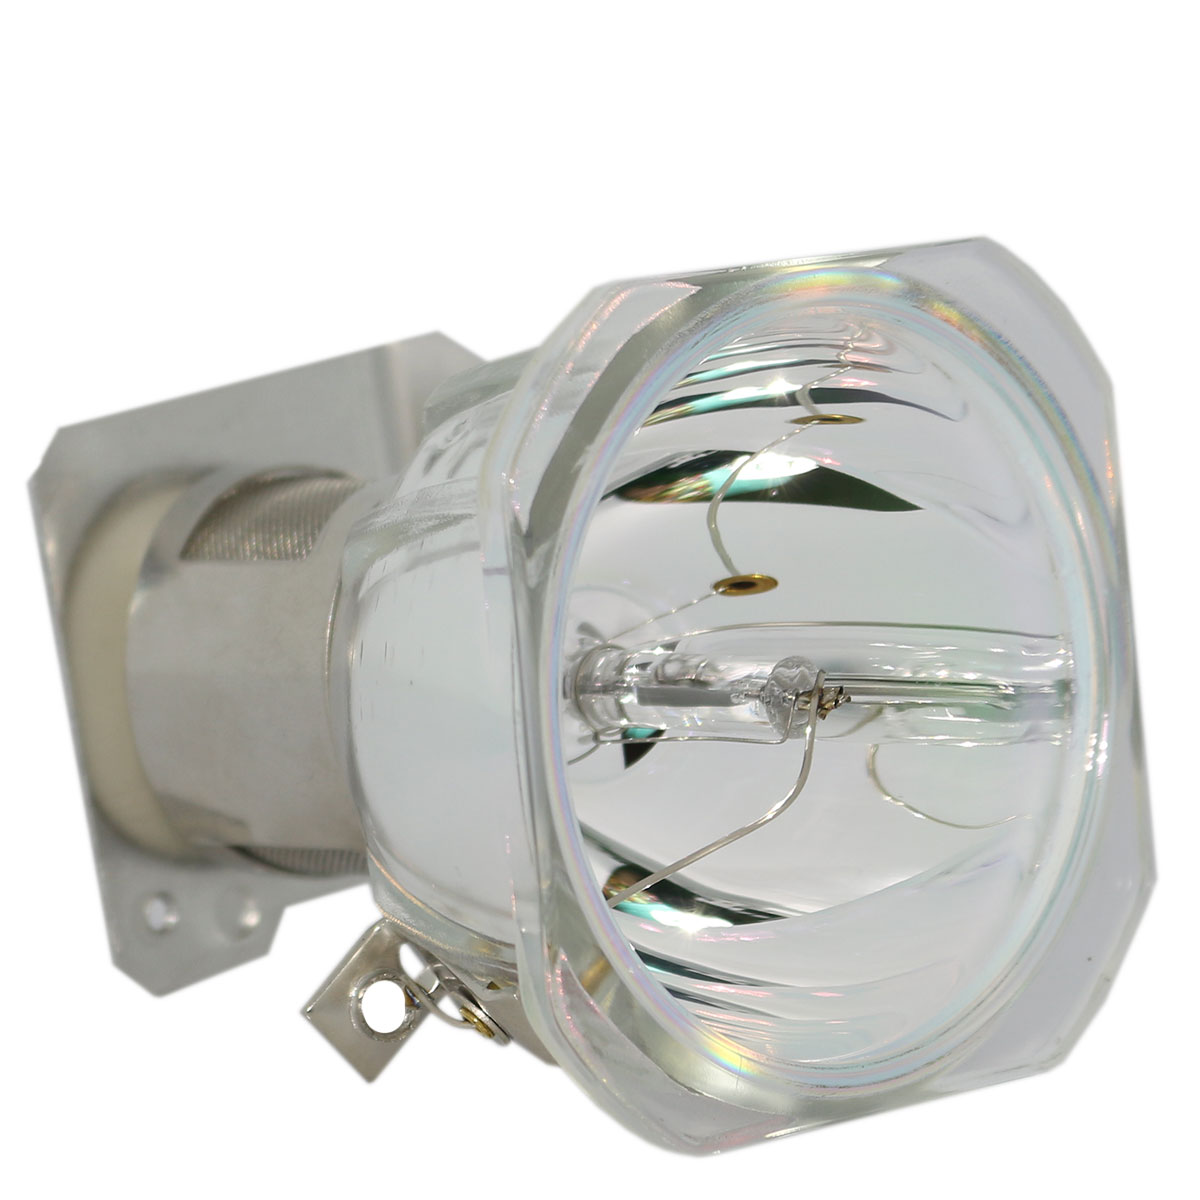 Compatible Bare Bulb AH-15001 AH15001 for EIKI EIP-200 Projector Lamp Bulb without housing free shipping compatible projector lamp ah 50001 for eiki eip 5000 left eip 5000l left projector